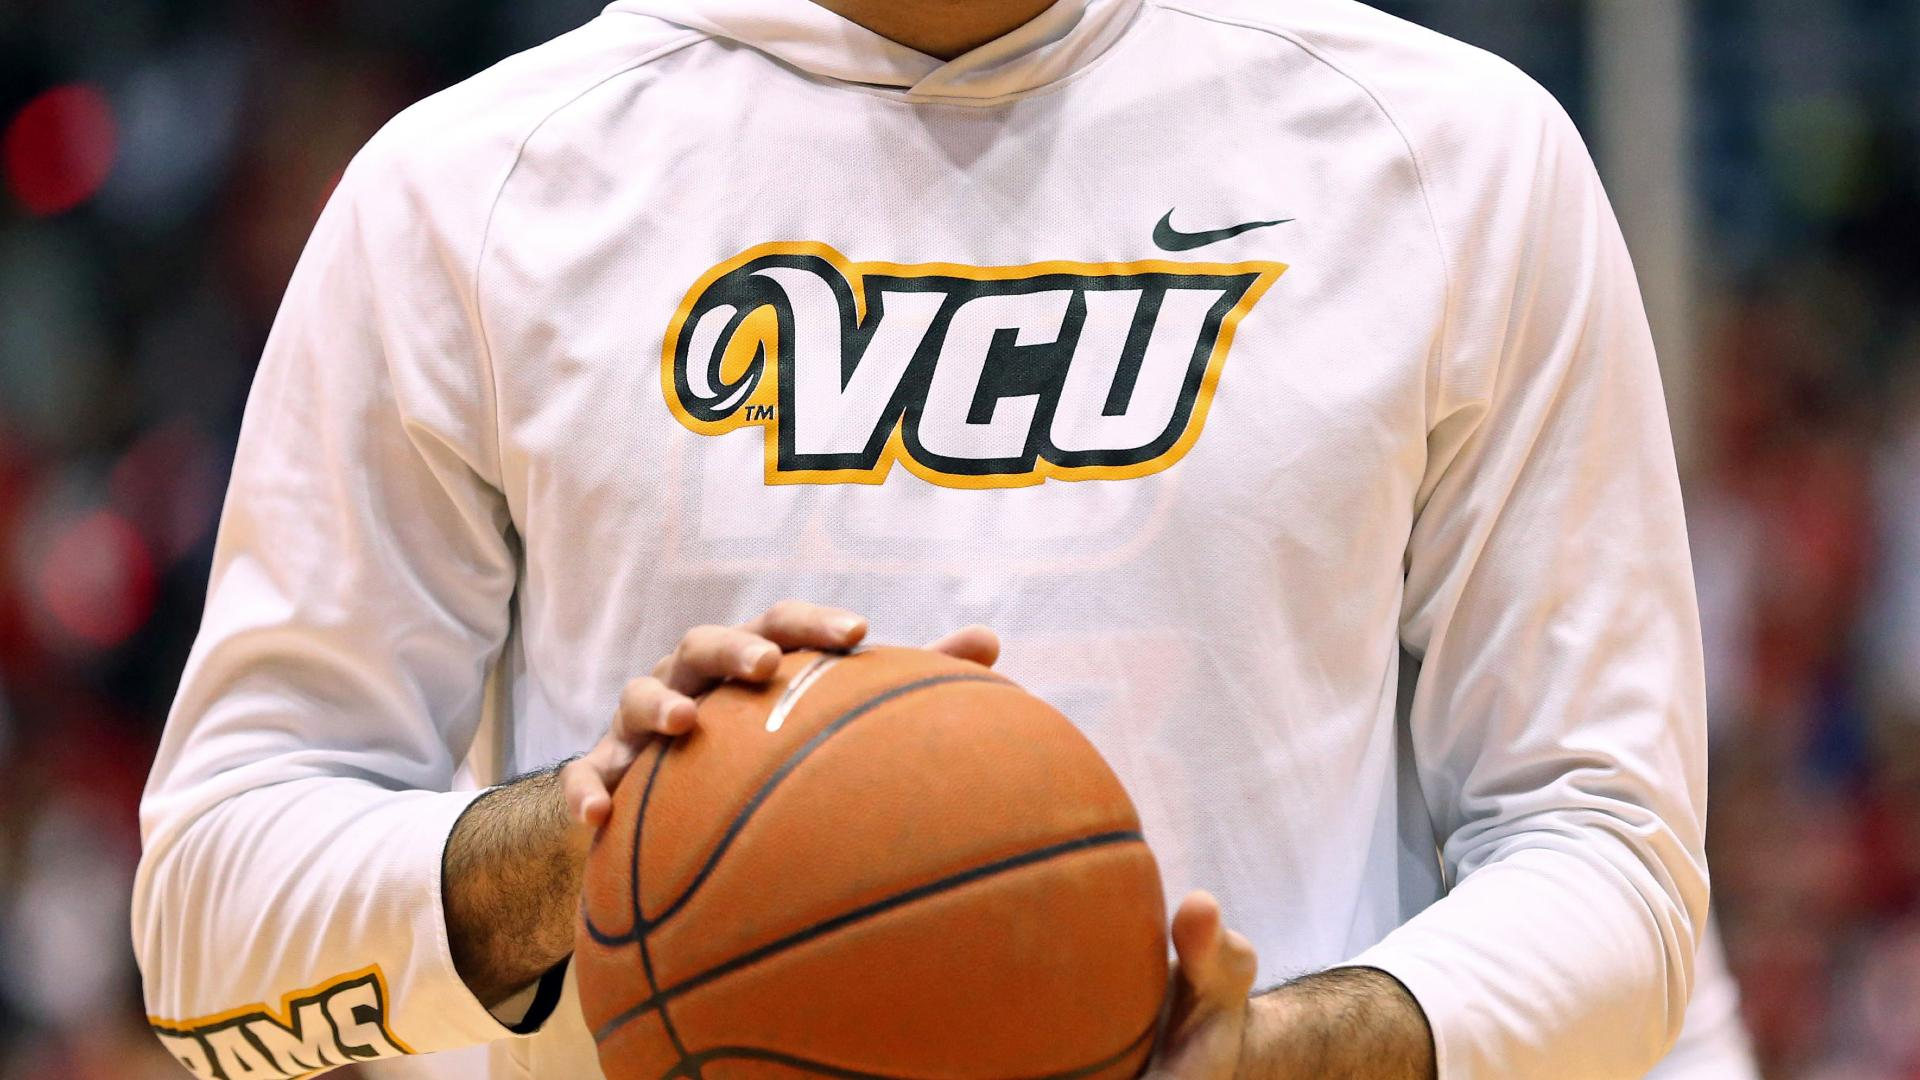 Aiding and abetting a criminal offence uk basketball how spread betting works football jerseys